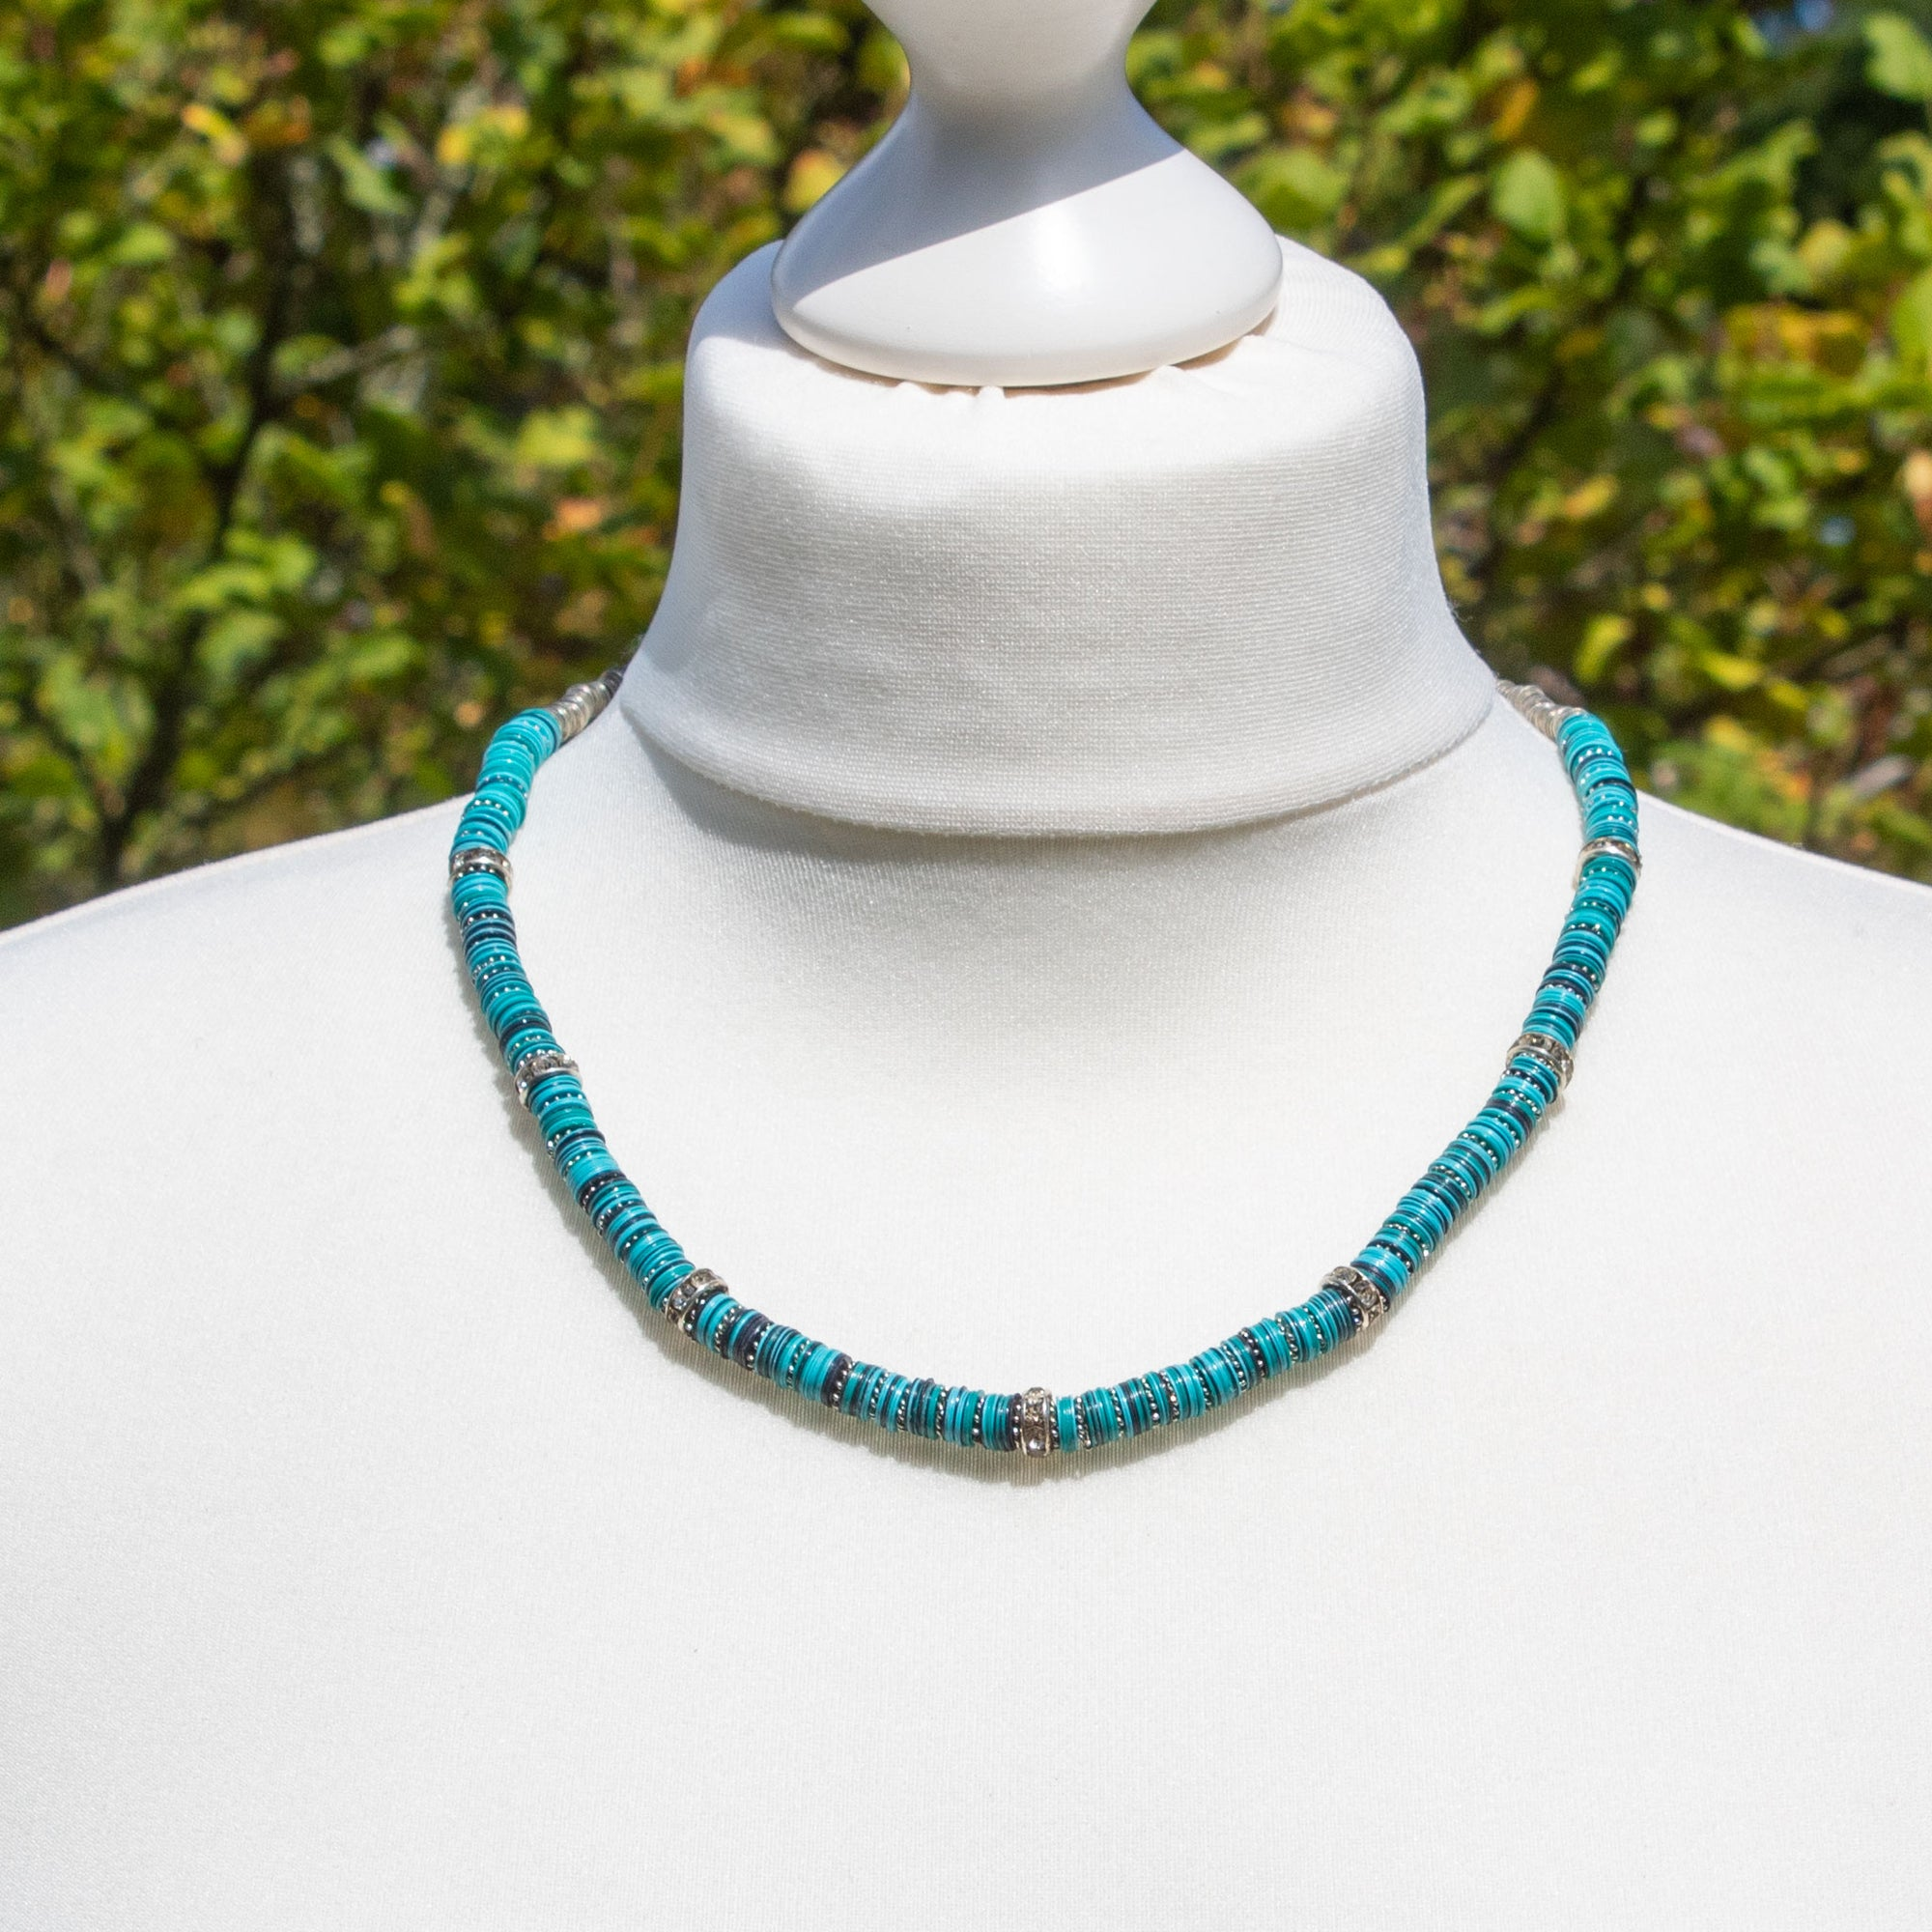 Turquoise/Blue Sequin Necklace | Necklace - The Naughty Shrew